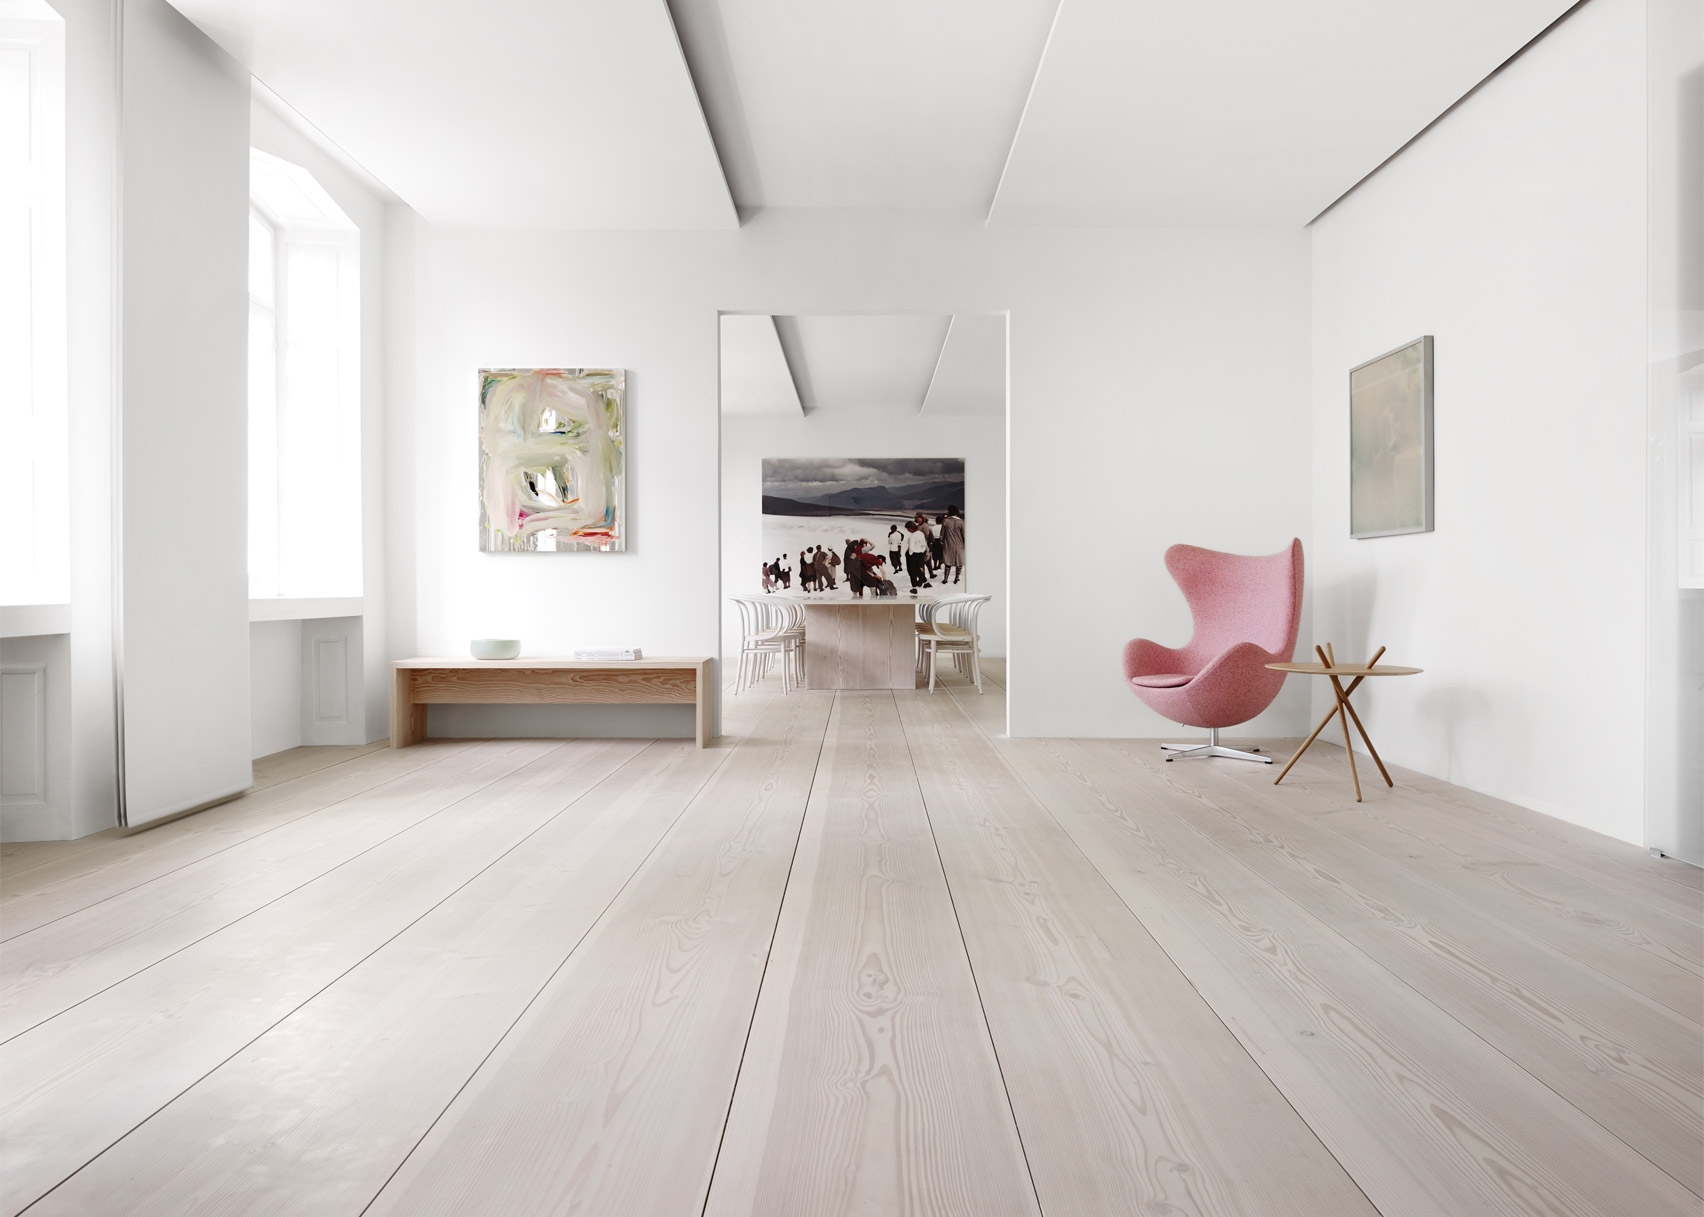 Dinesen Home at The Crossing